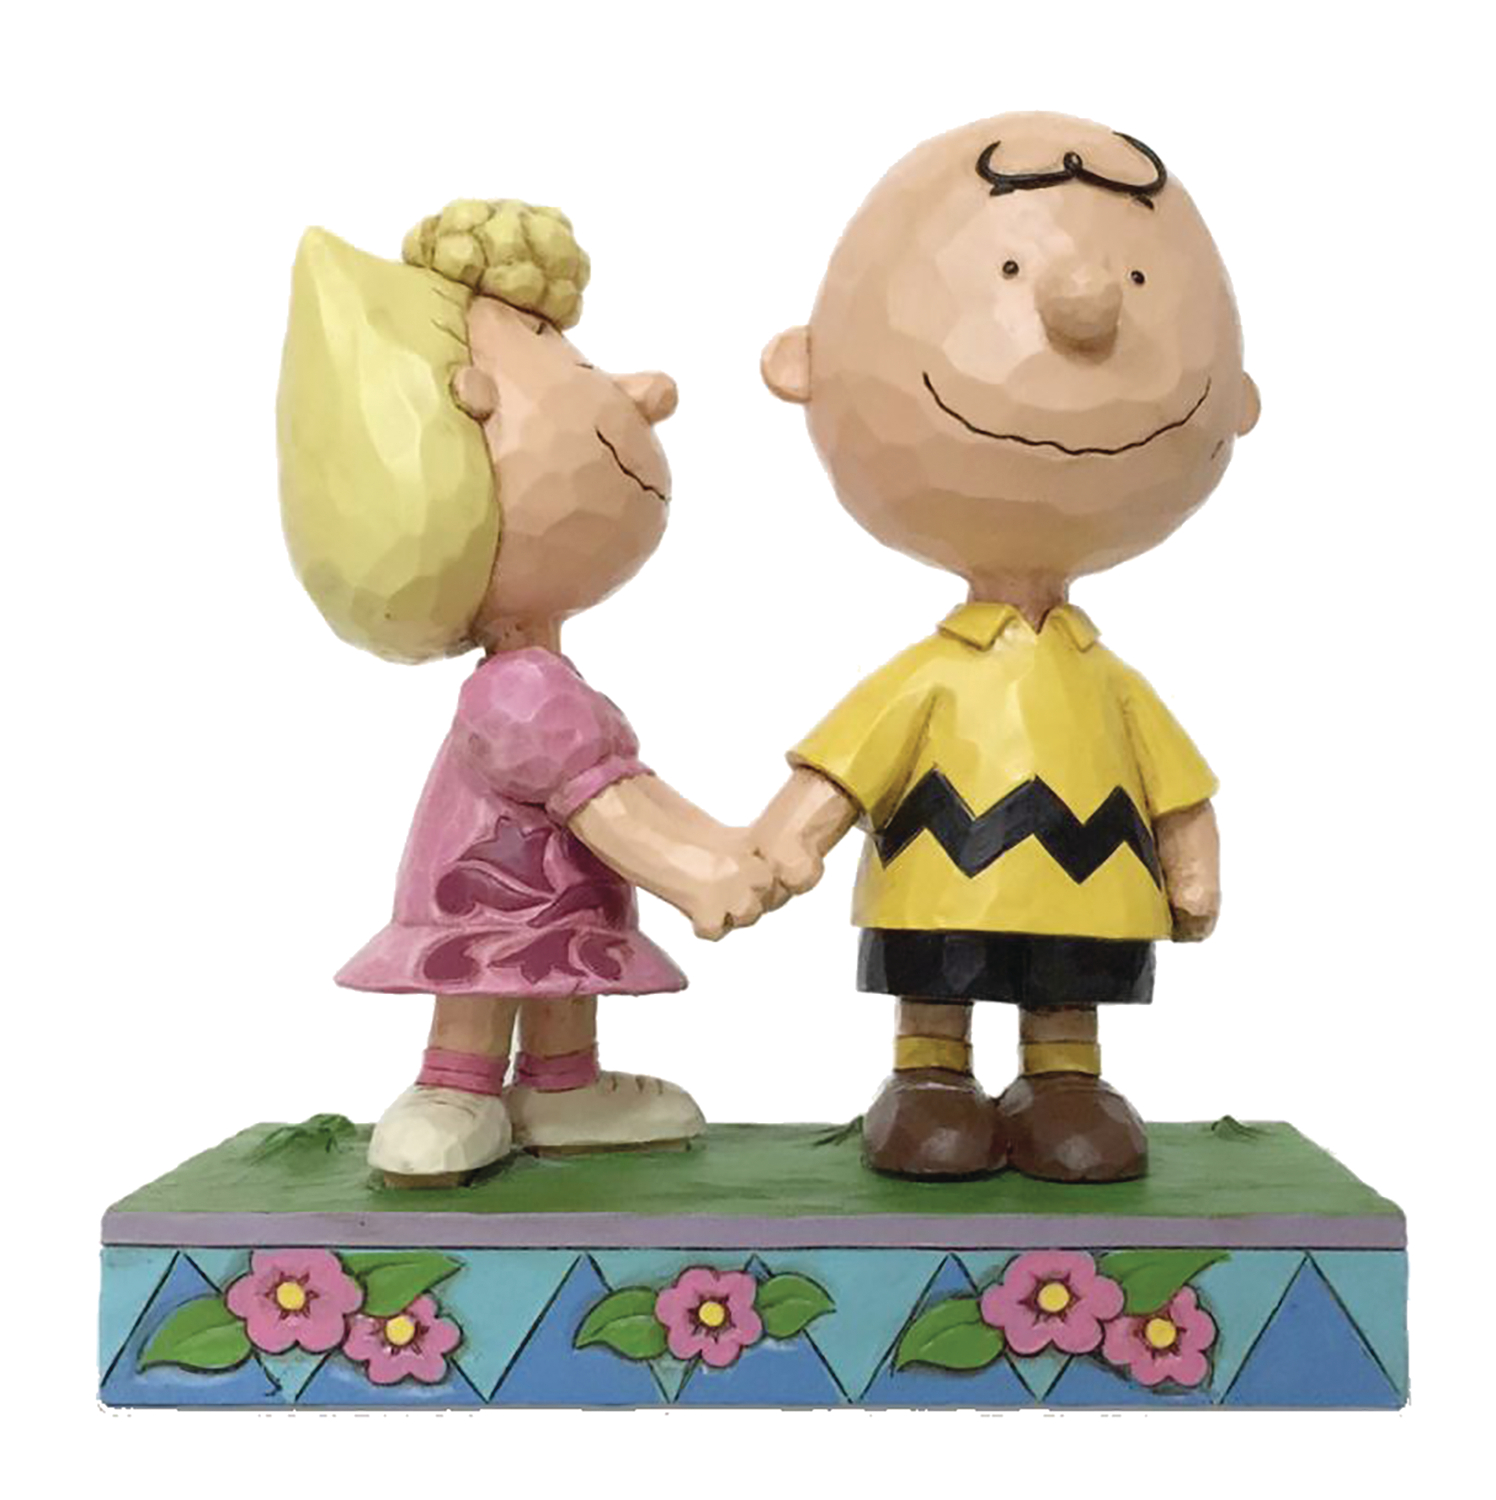 CHARLIE BROWN AND SALLY FIGURE